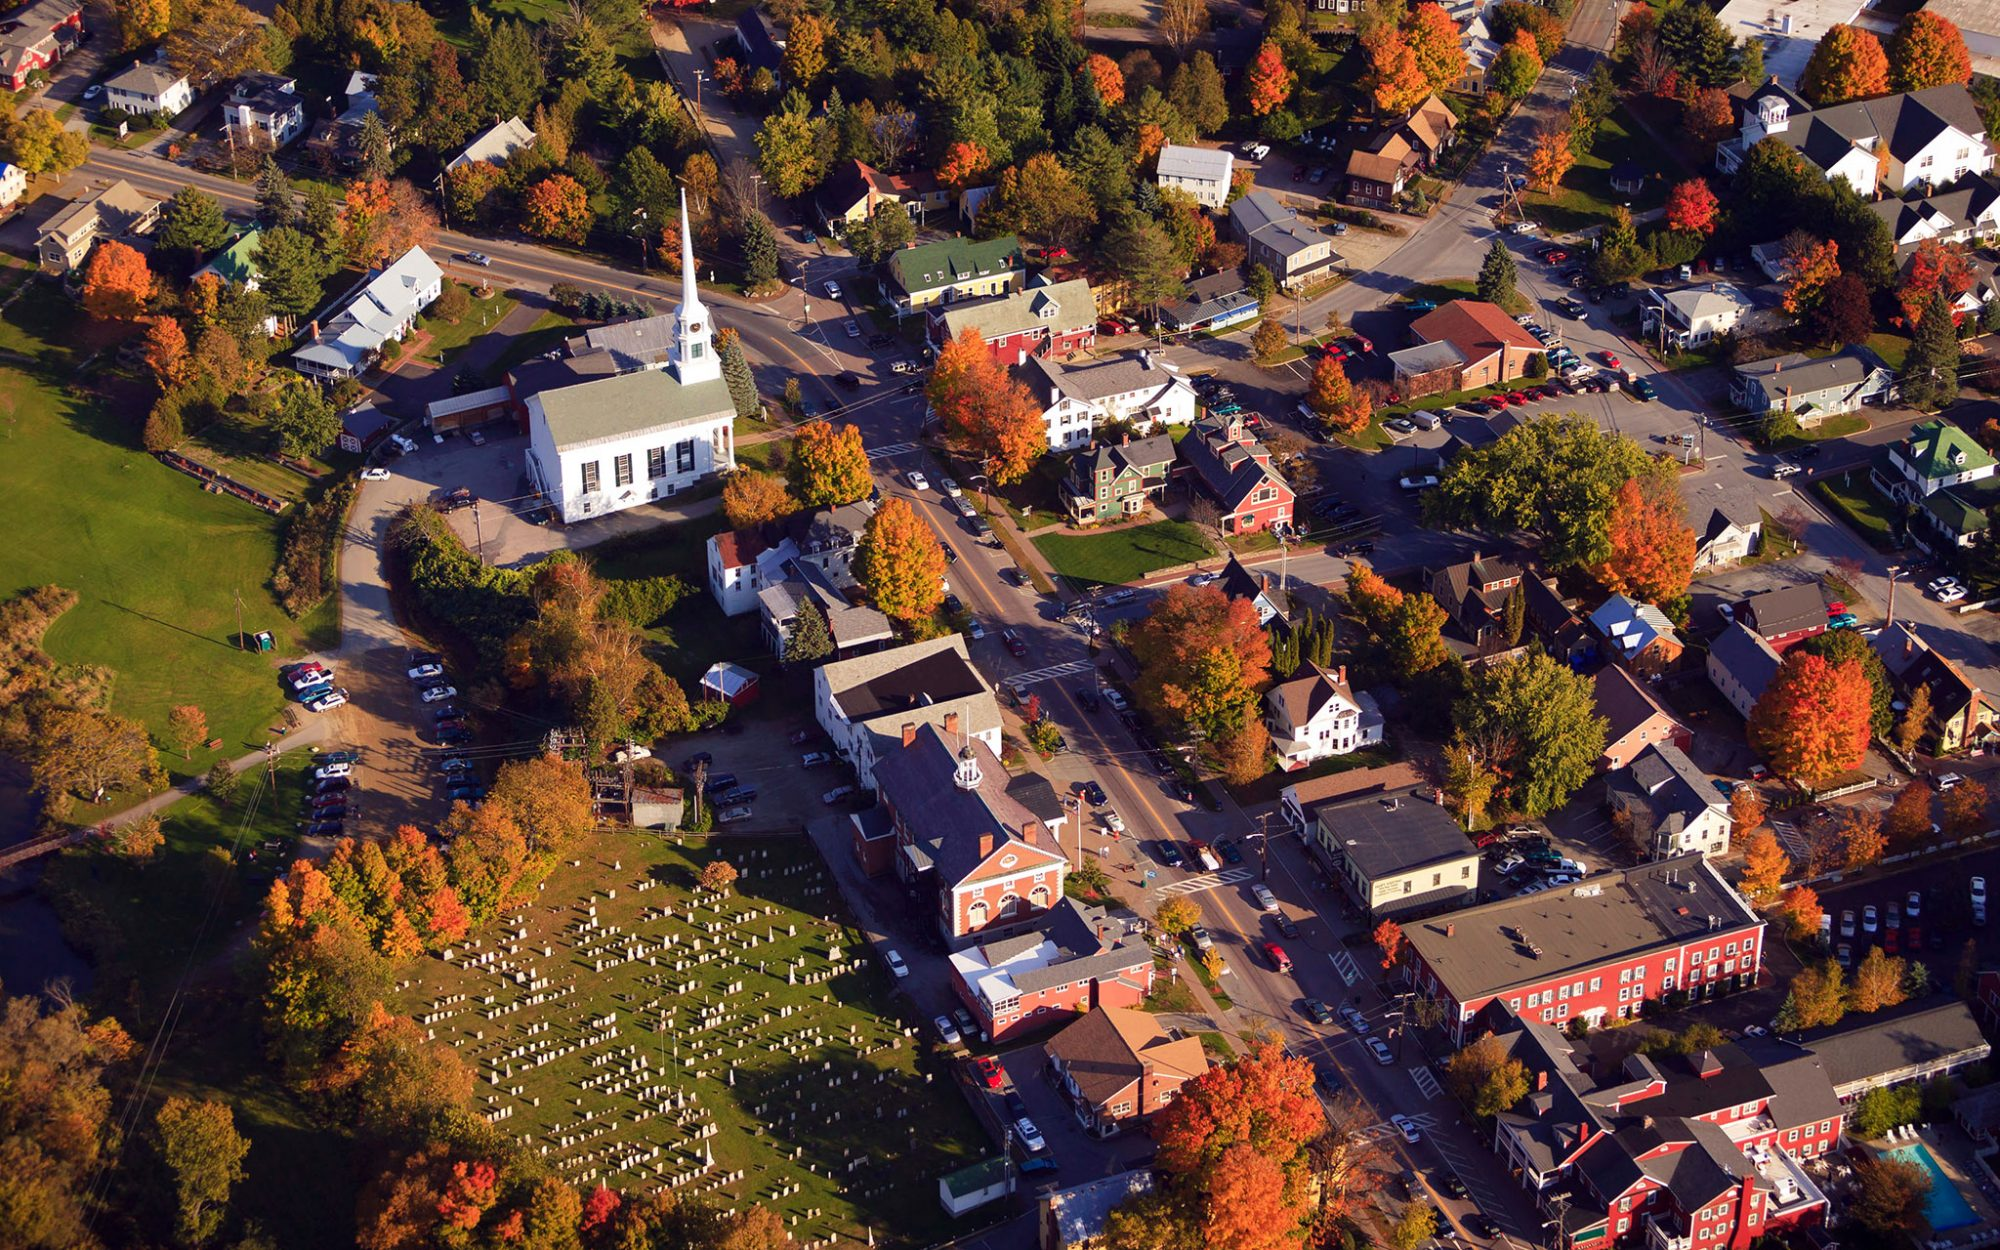 America's Best Towns for Fall Colors: Stowe, VT